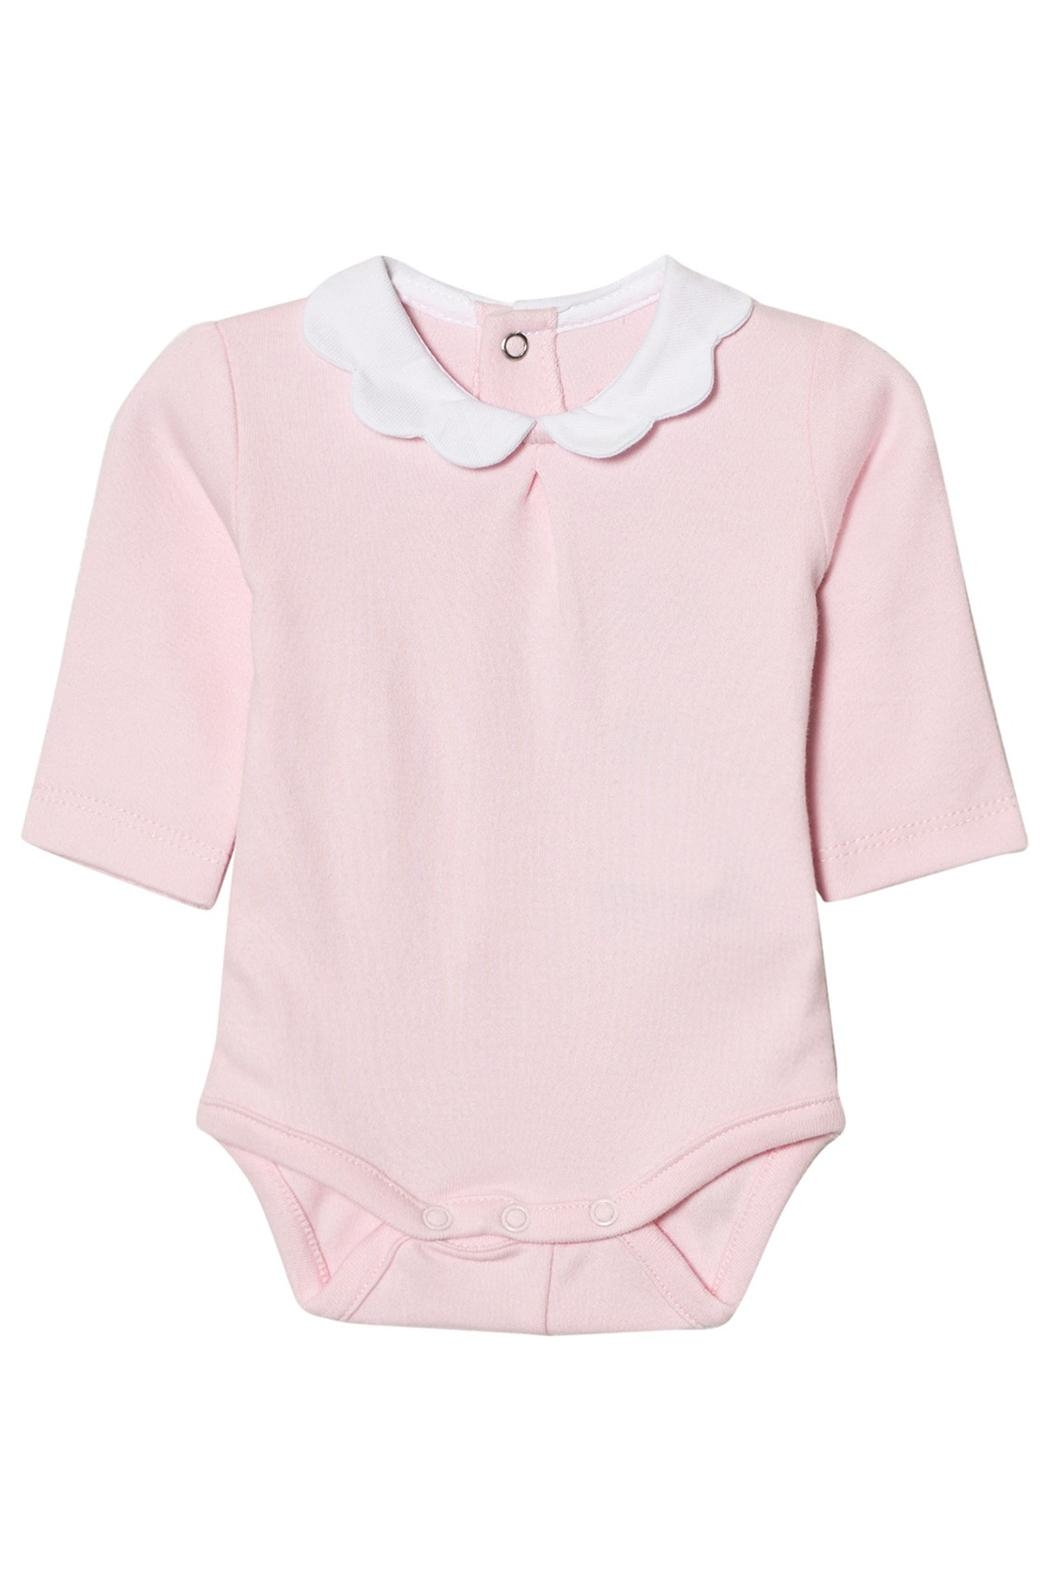 Mayoral Pink Scallop Collar Onesie - Main Image